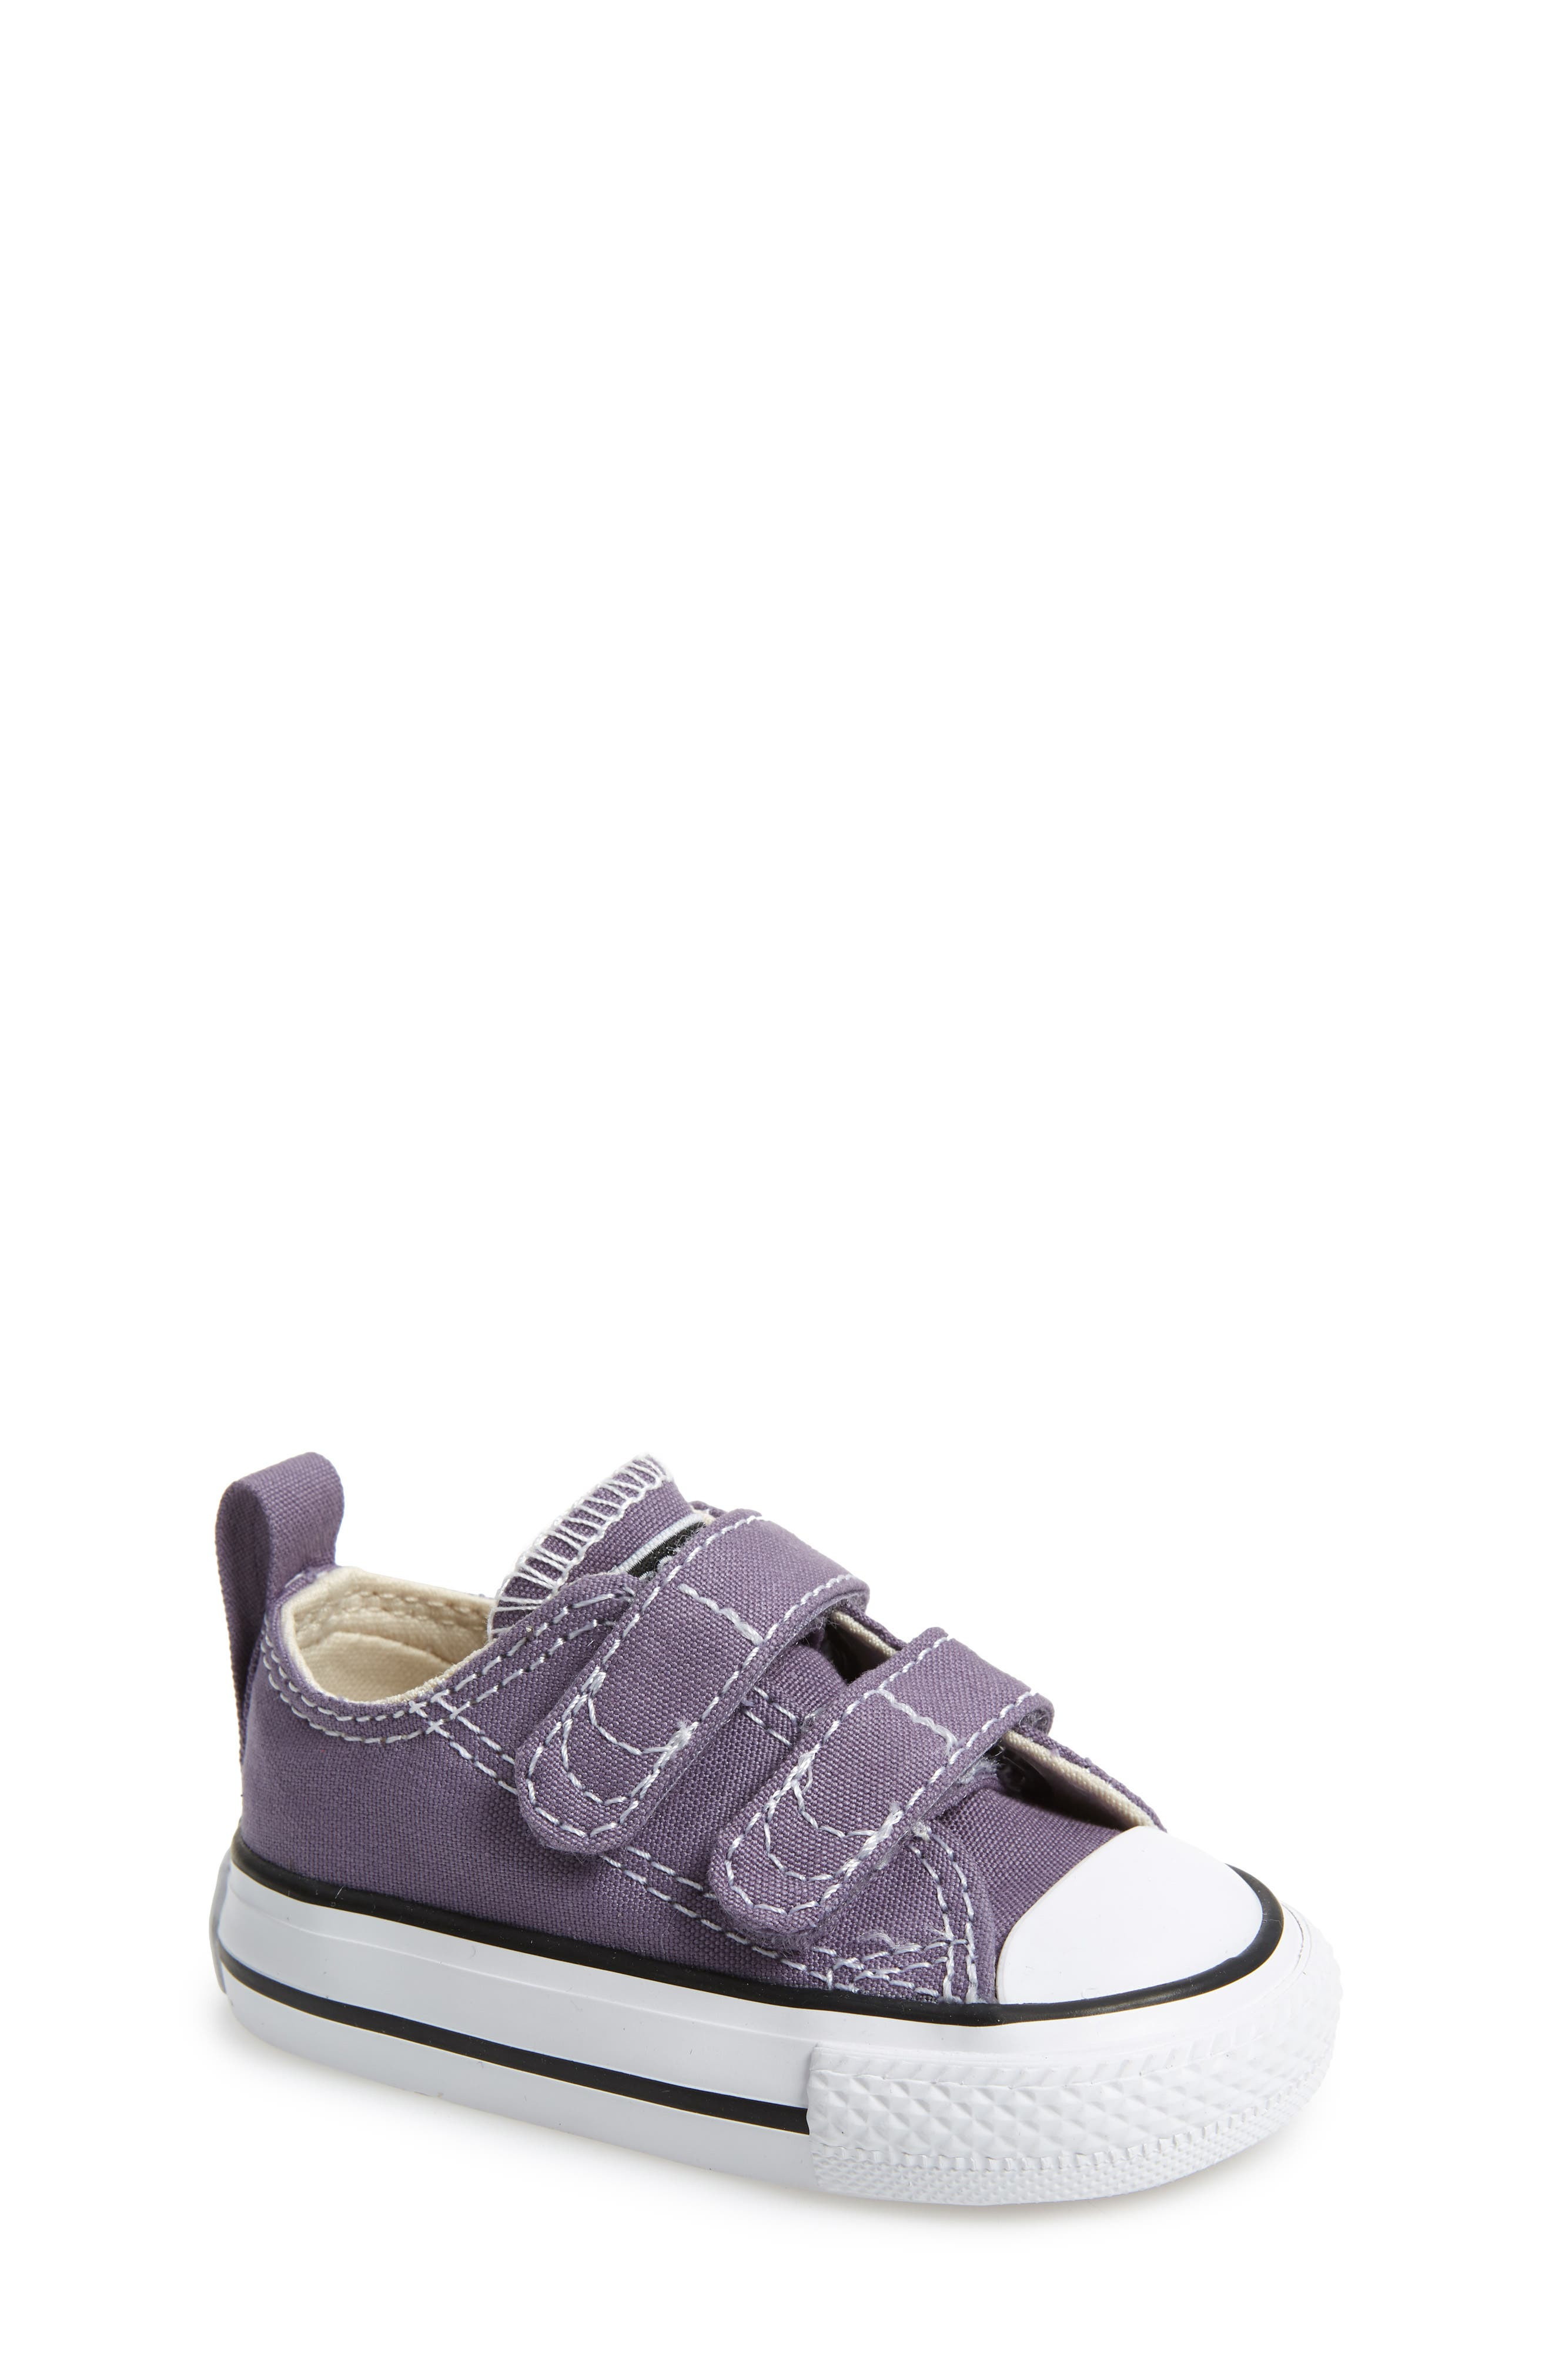 Chuck Taylor<sup>®</sup> 'Double Strap' Sneaker,                         Main,                         color, MOODY PURPLE/ NATURAL IVORY